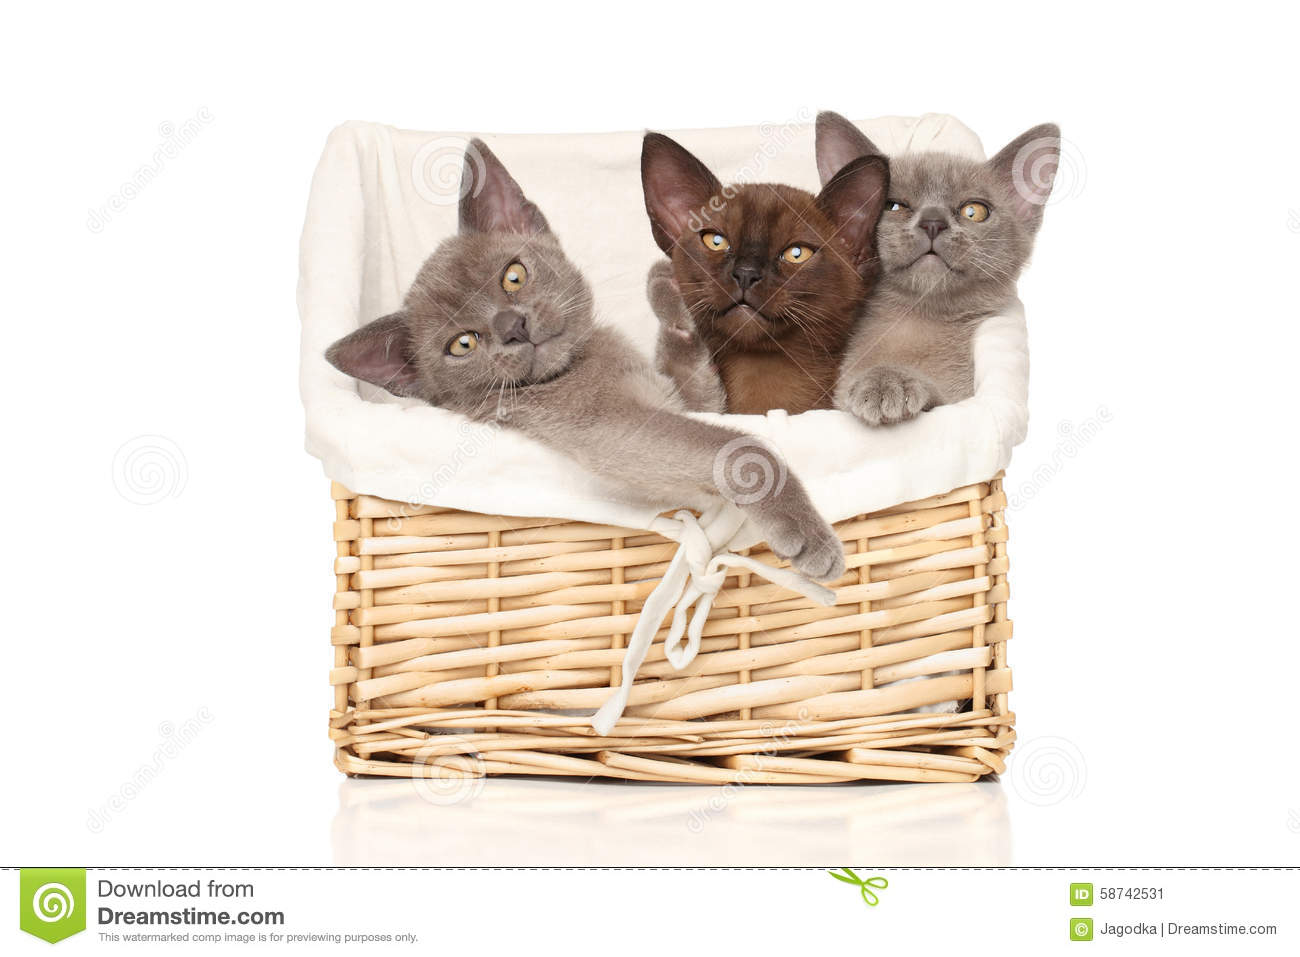 Kittens in basket on a white background